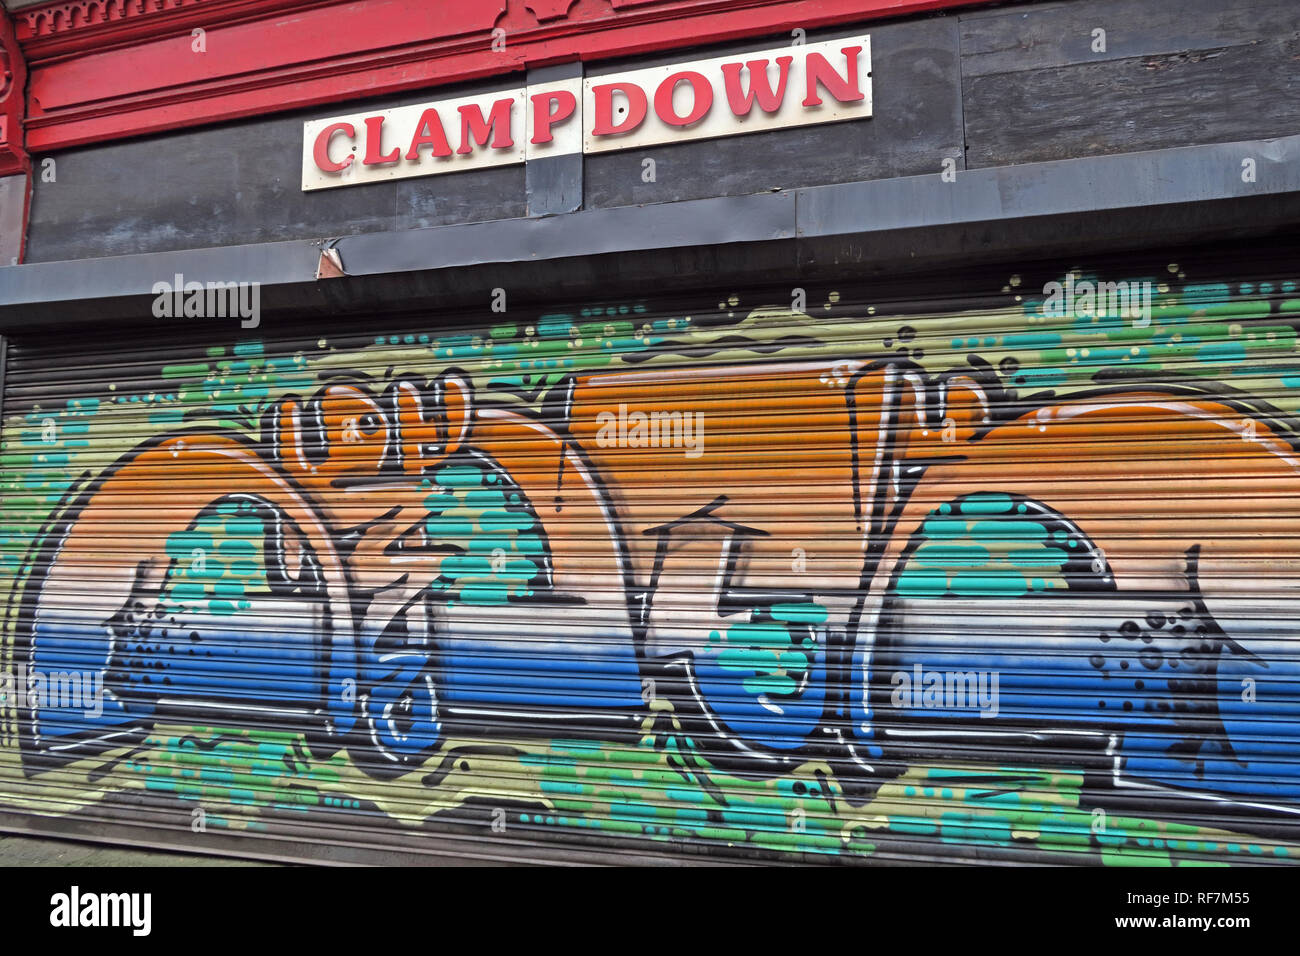 Old Records & Vinyl shop, Clampdown Records, Paton Street, Piccadilly, Northern Quarter, Manchester City Centre, North West England, UK - Stock Image